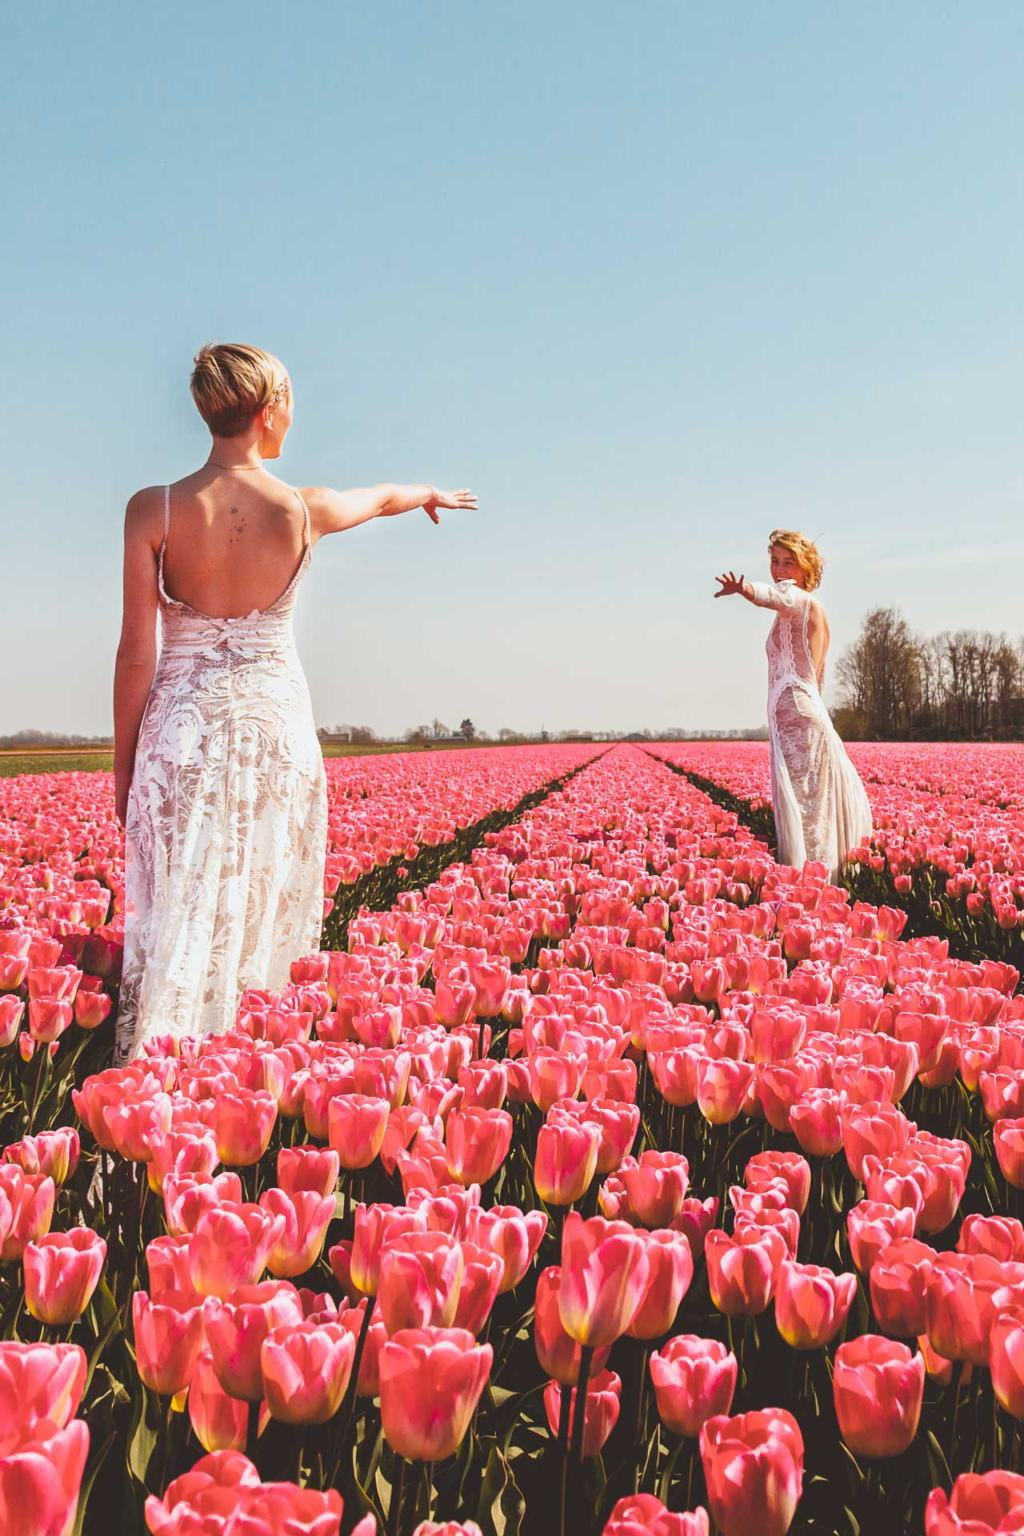 Dutch Tulip Fields, Tulpenvelden, Lesbian Wedding, two brides, Netherlands